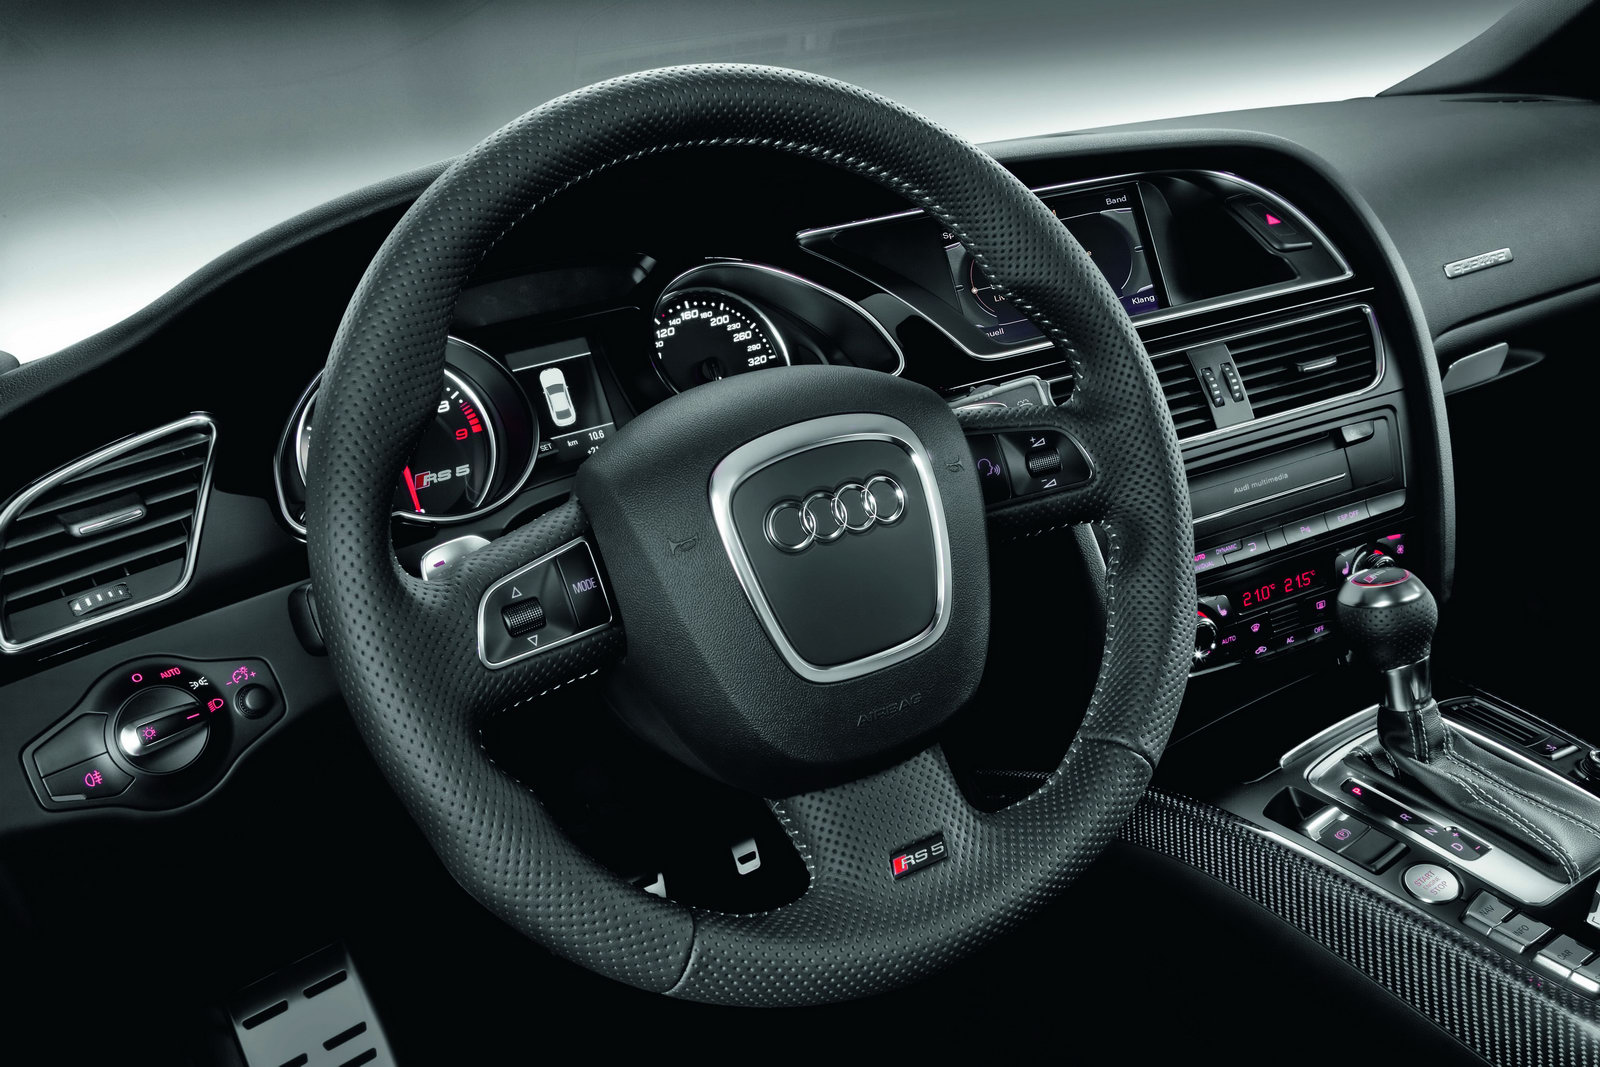 2011 Audi RS5 Coupe 2 The All New Audi RS5 Coupe Revealed, Officially